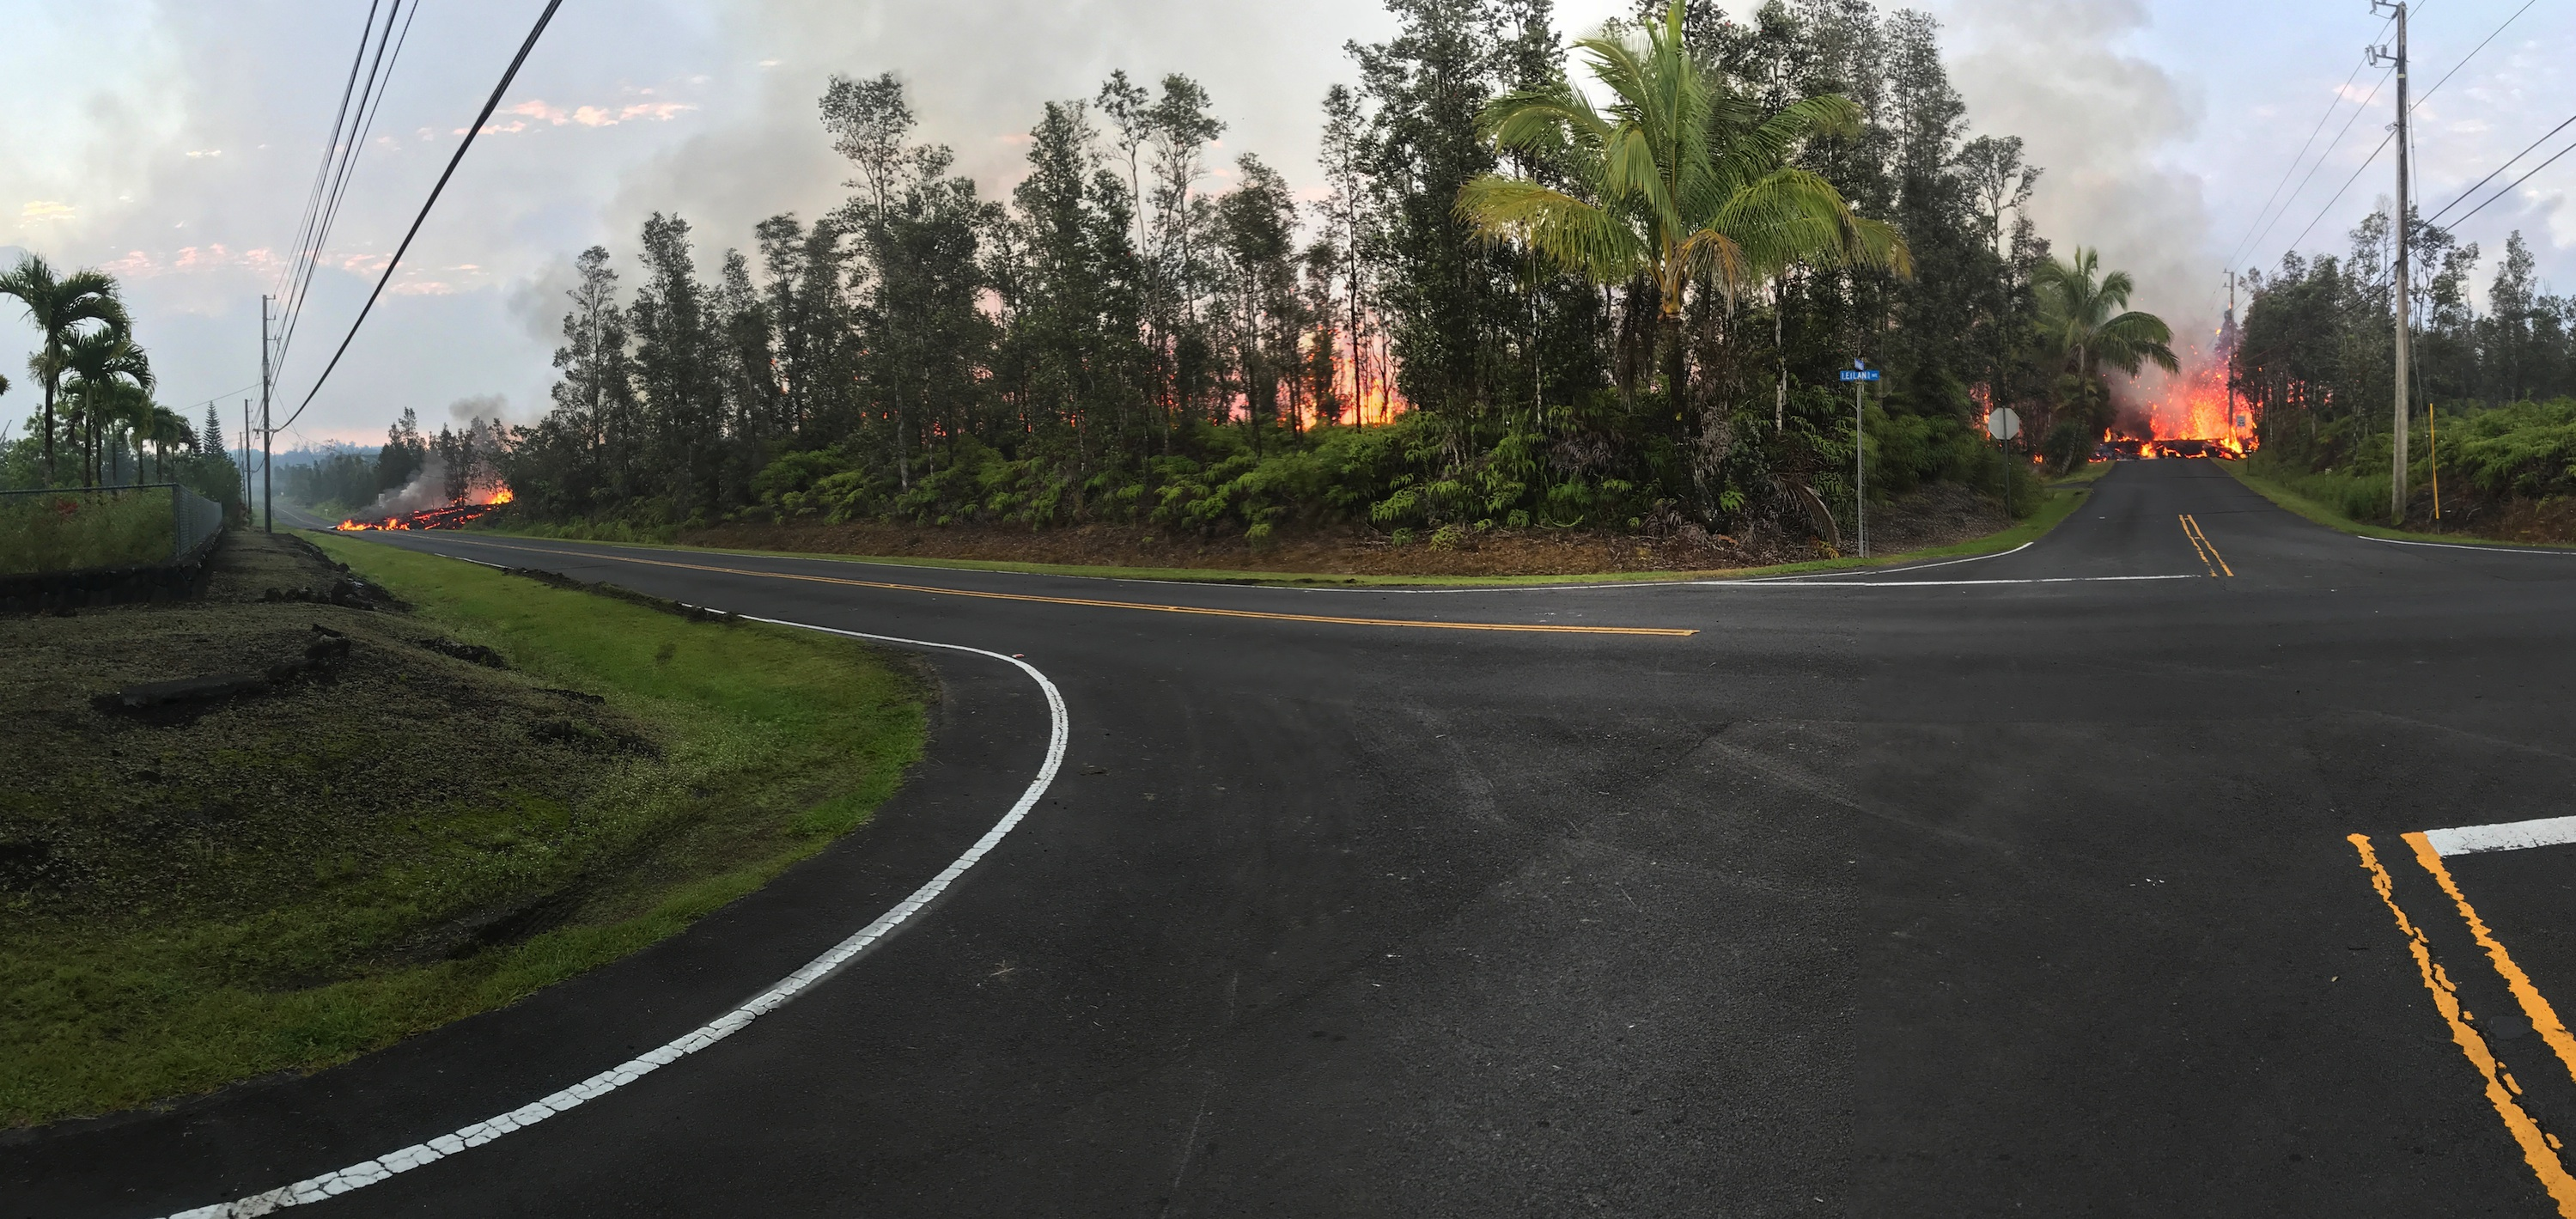 panorama of street intersection showing low wall of cooled lava and spatter in distance, cutting across roads and into trees